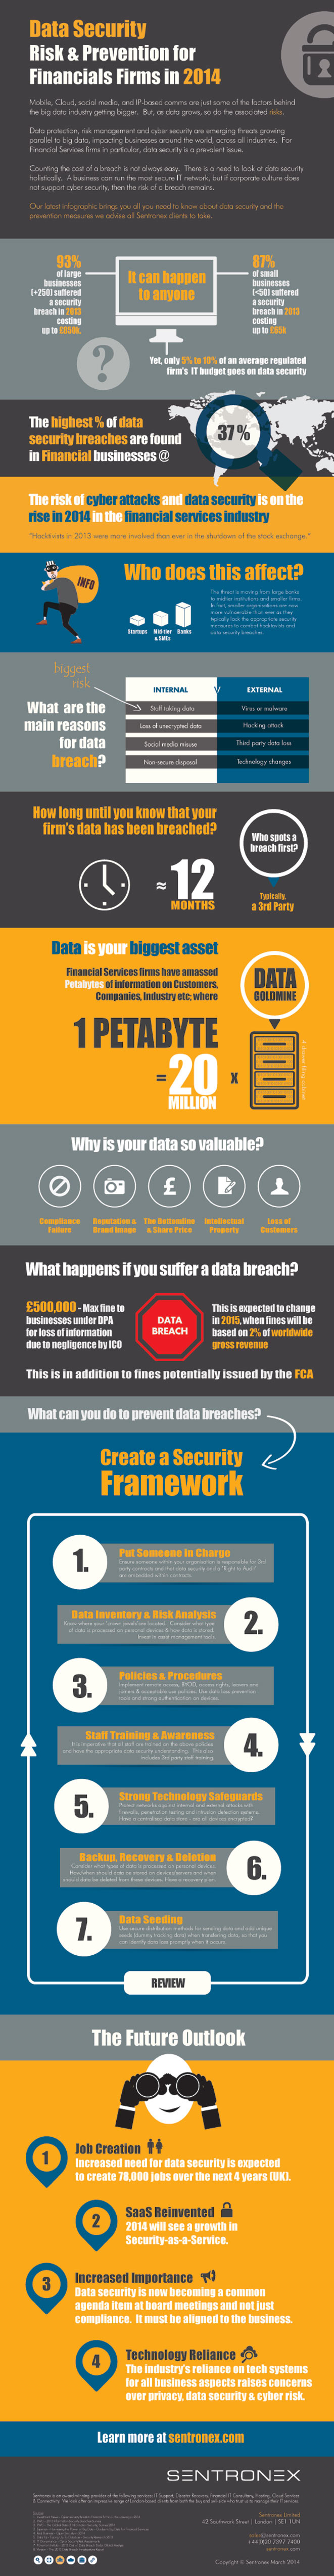 DATA SECURITY: RISK & PREVENTION FOR FINANCIAL FIRMS 2